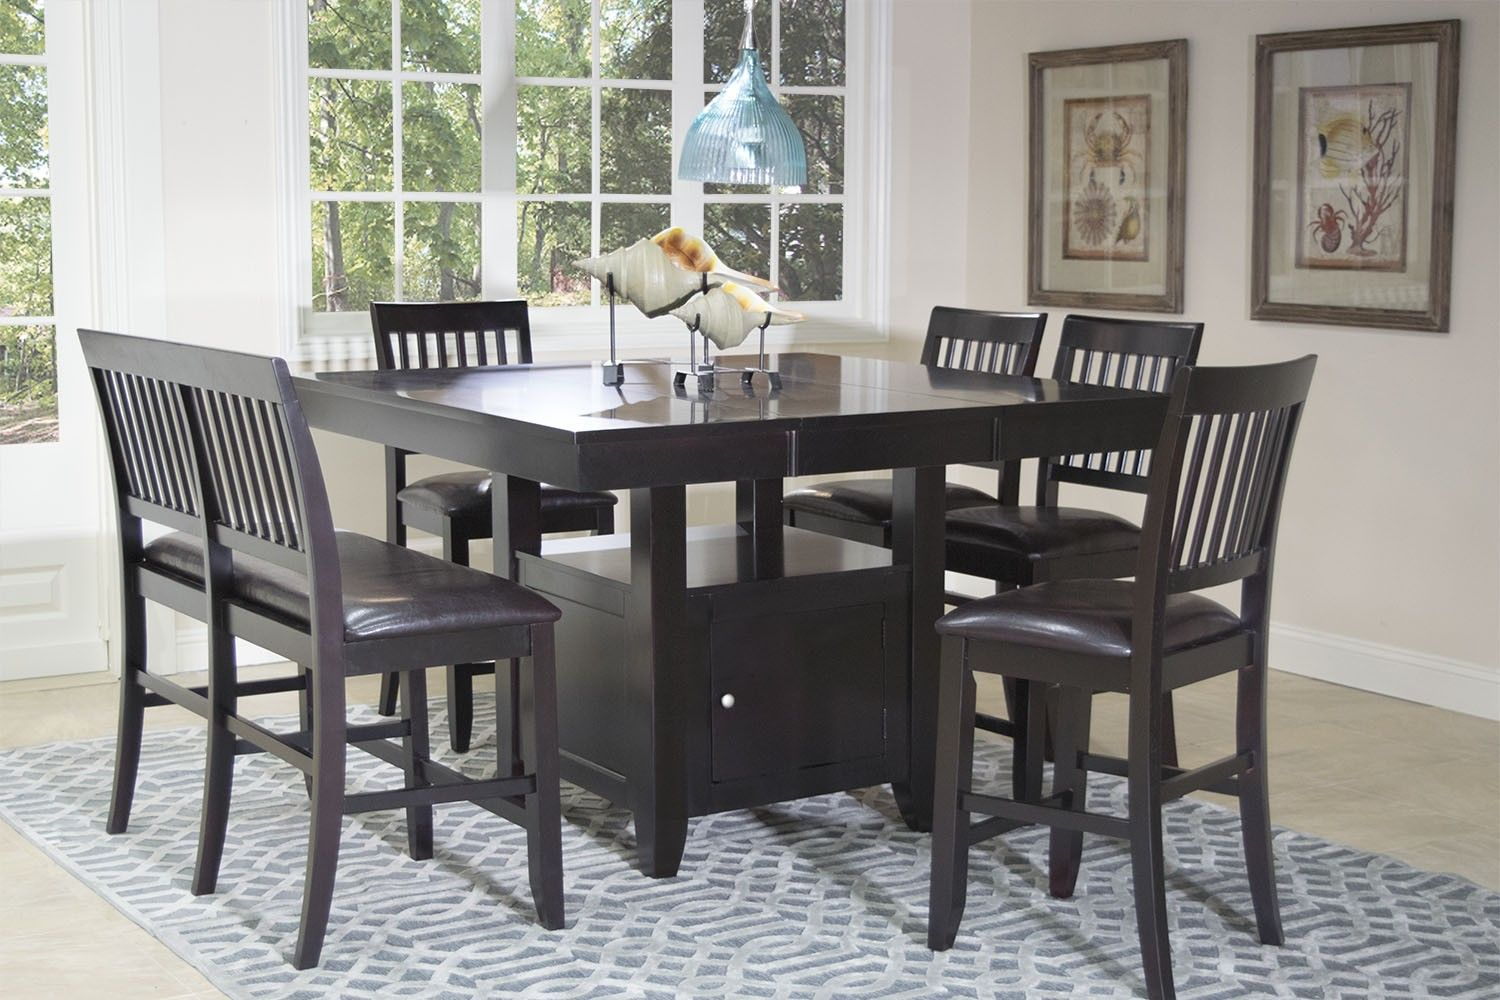 Kaylee Espresso Dining Room  Dining Room  Mor Furniture For Less Fascinating Espresso Dining Room Sets Decorating Design